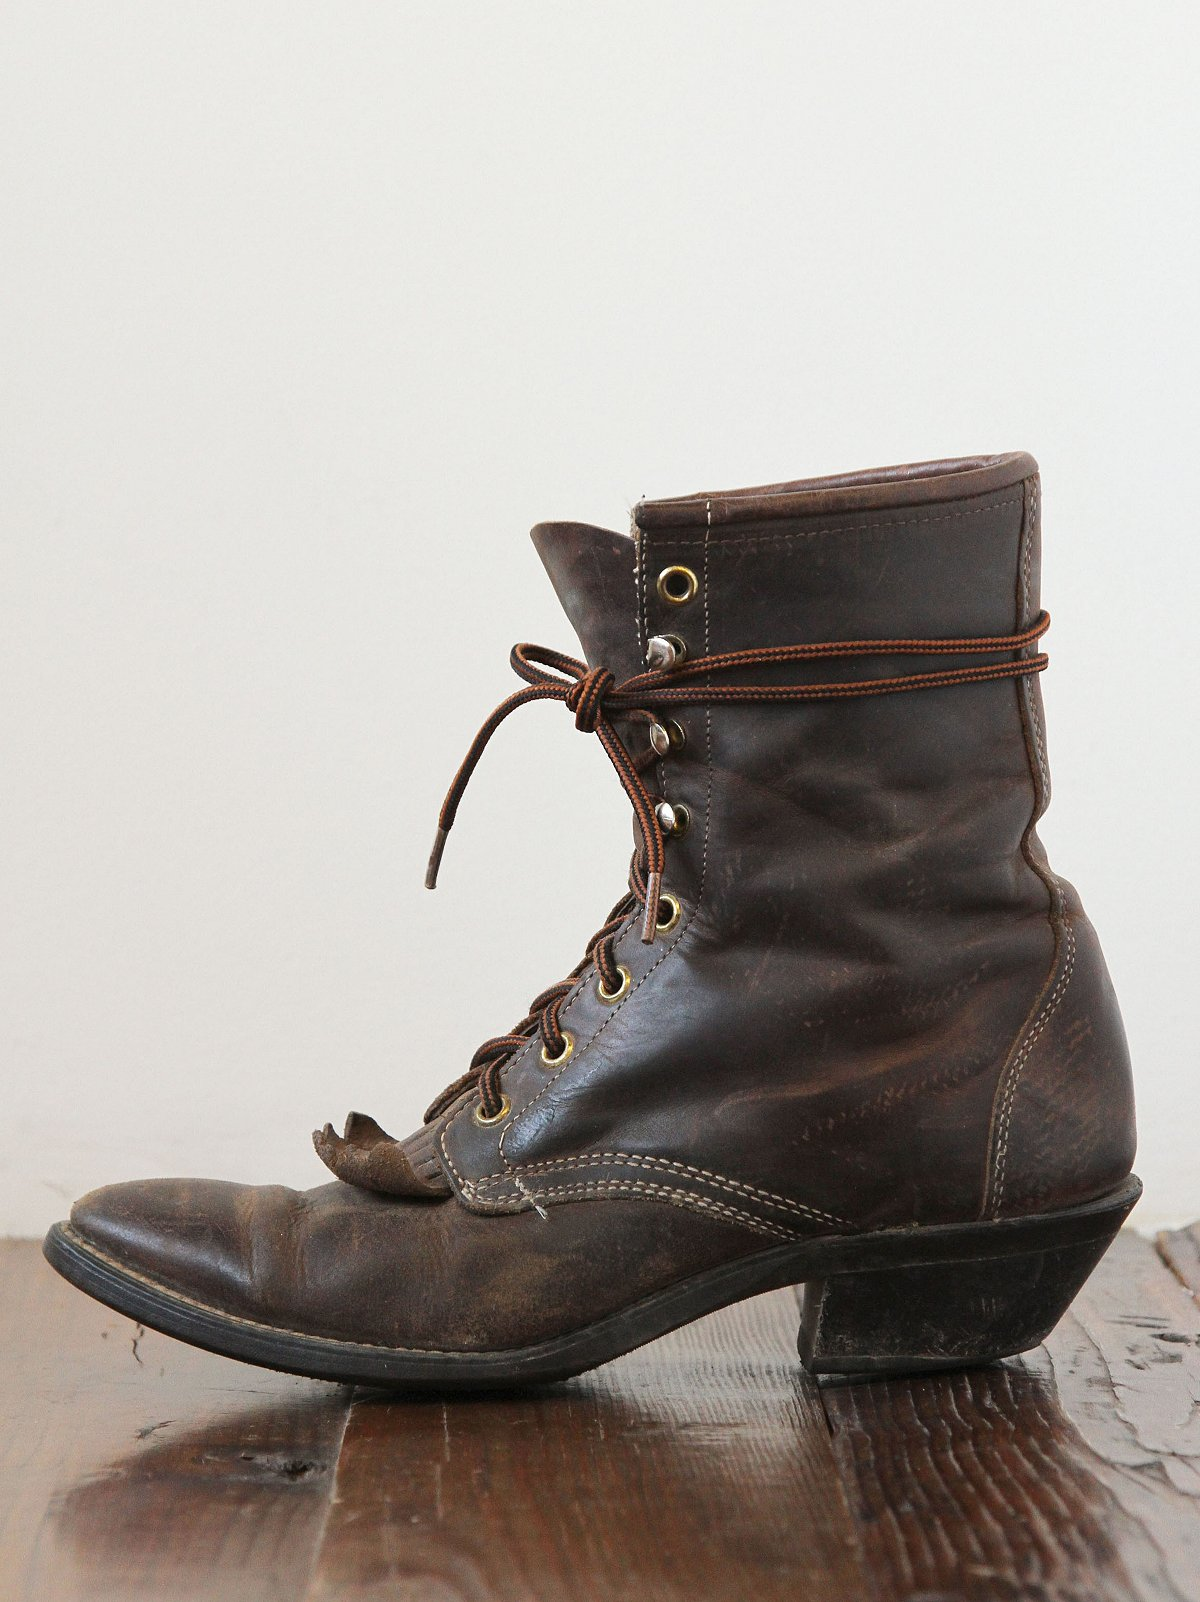 Vintage Leather Lace-Up Boots